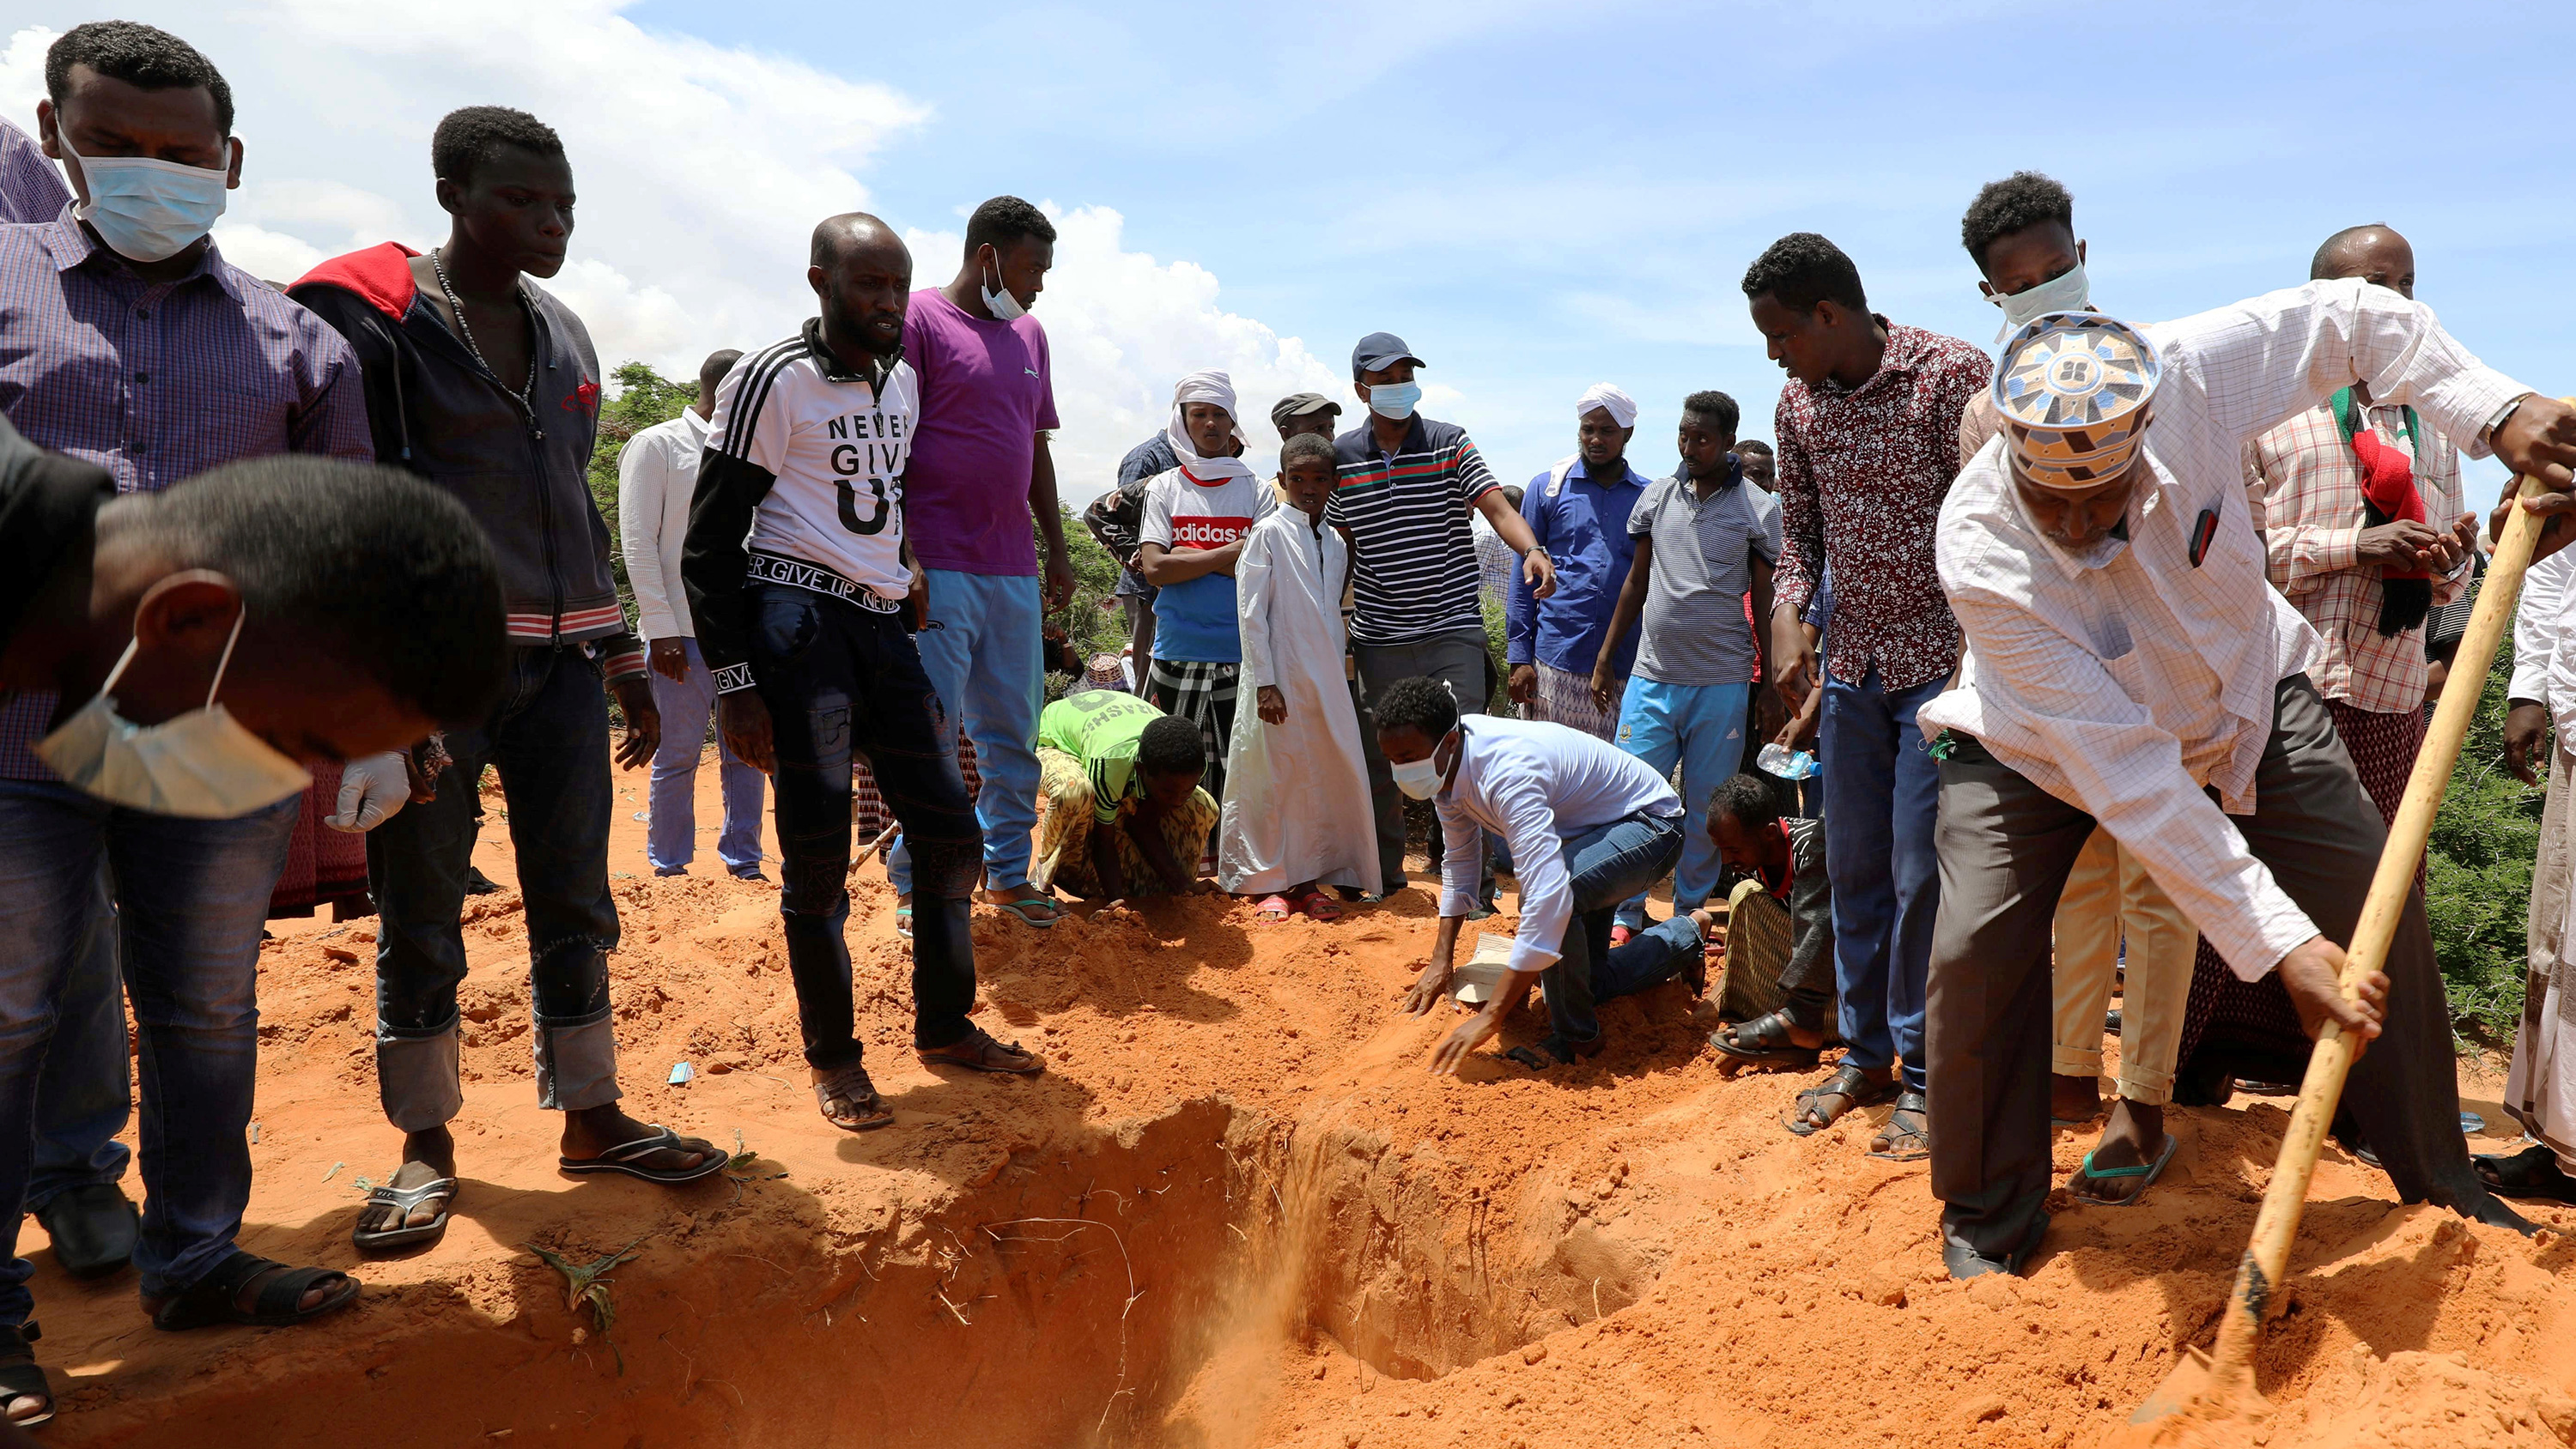 The photo shows a crowd gathered around a grave while one person shovels dirt in the hole.